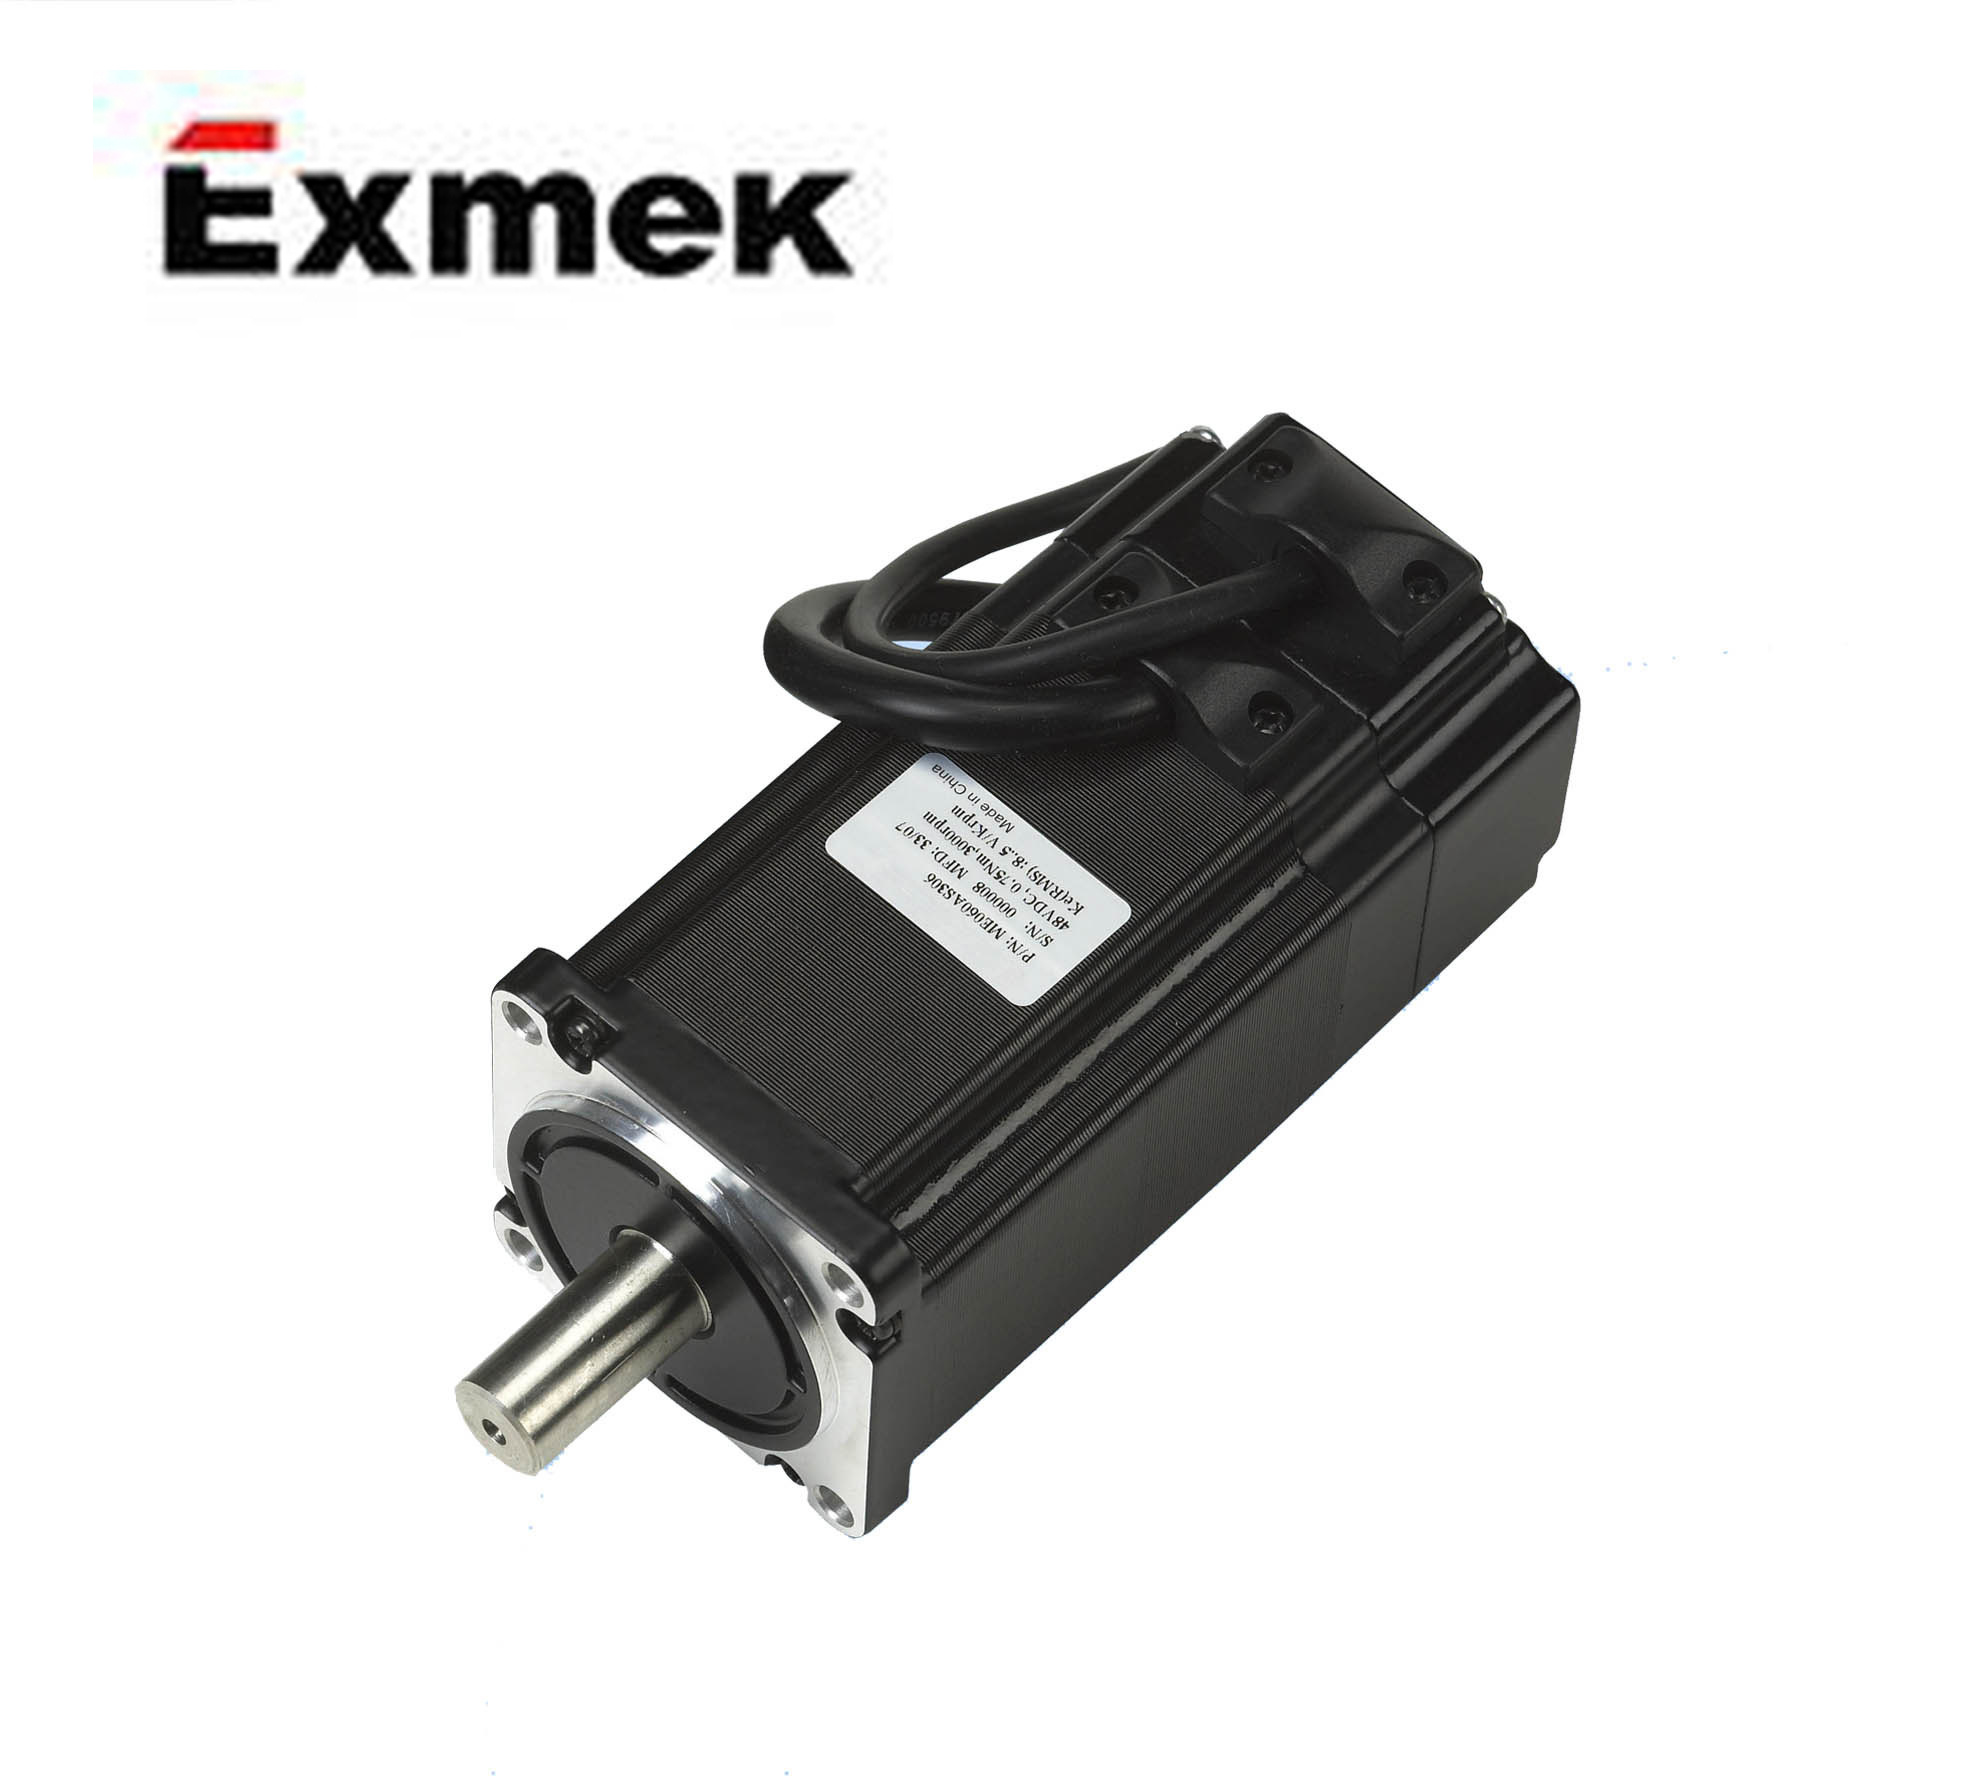 Hot Item 60mm 3000rpm 24v Brushless Dc Motor Me060as 1 Diagram Quotes China Bldc